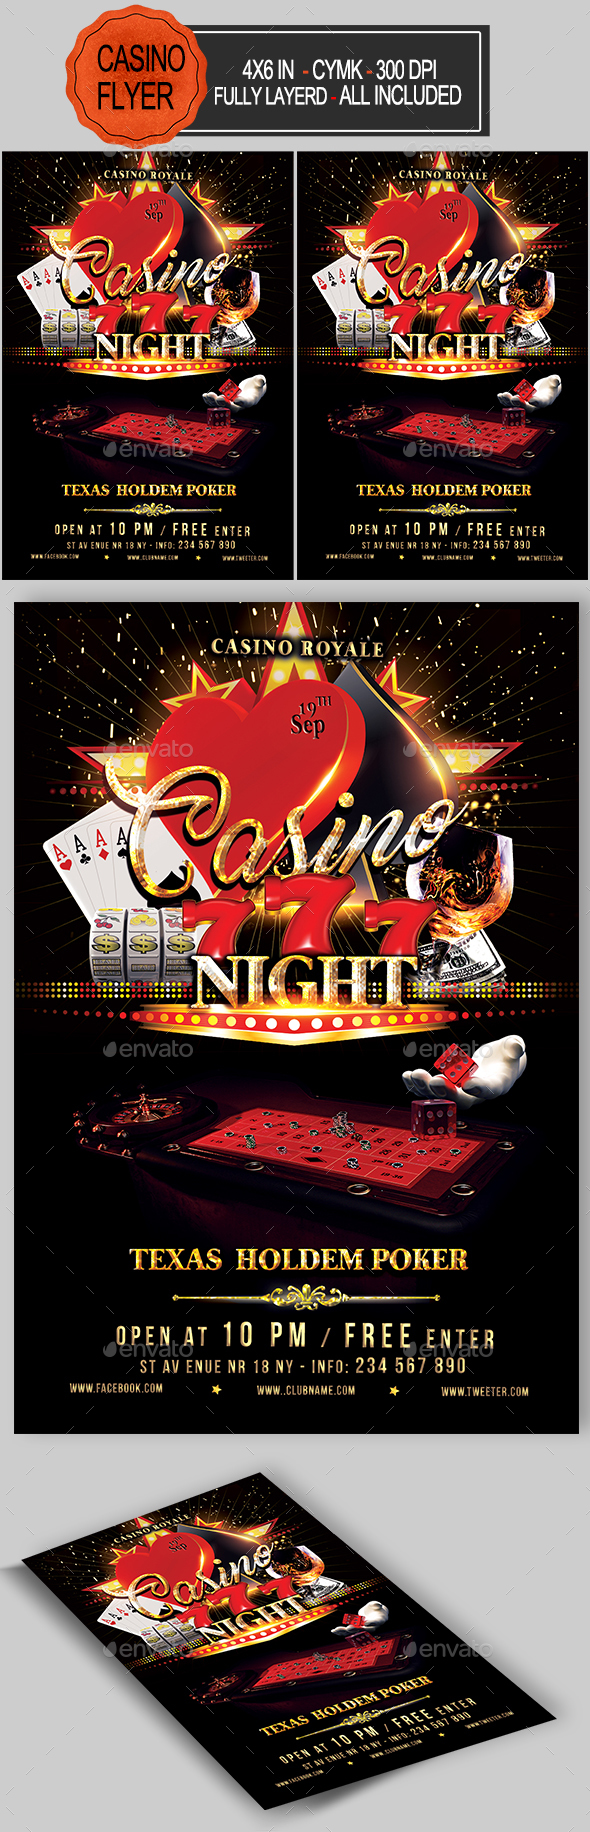 Casino Flyer - Events Flyers